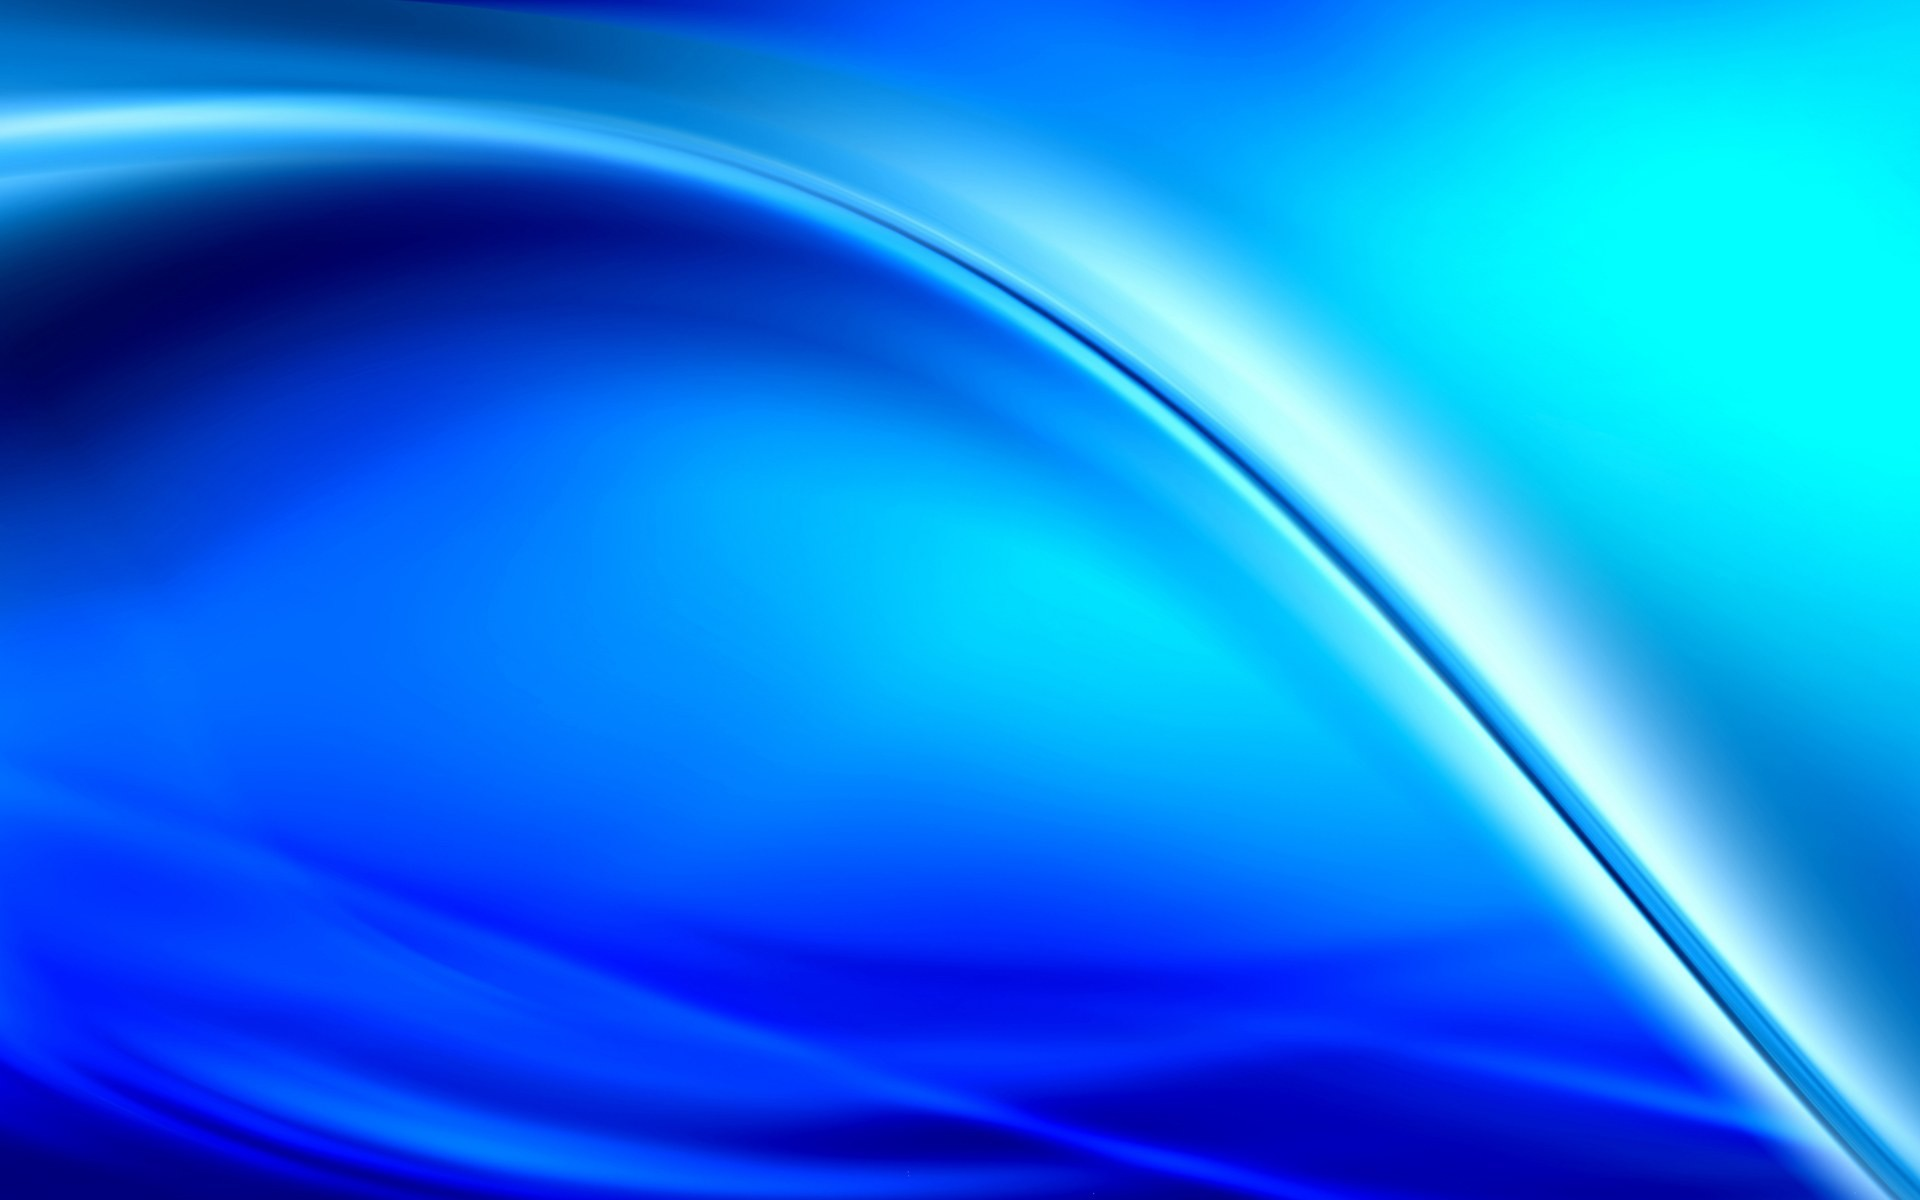 Bright Blue 3D Abstract Wallpaper HD Wallpaper 1920x1200